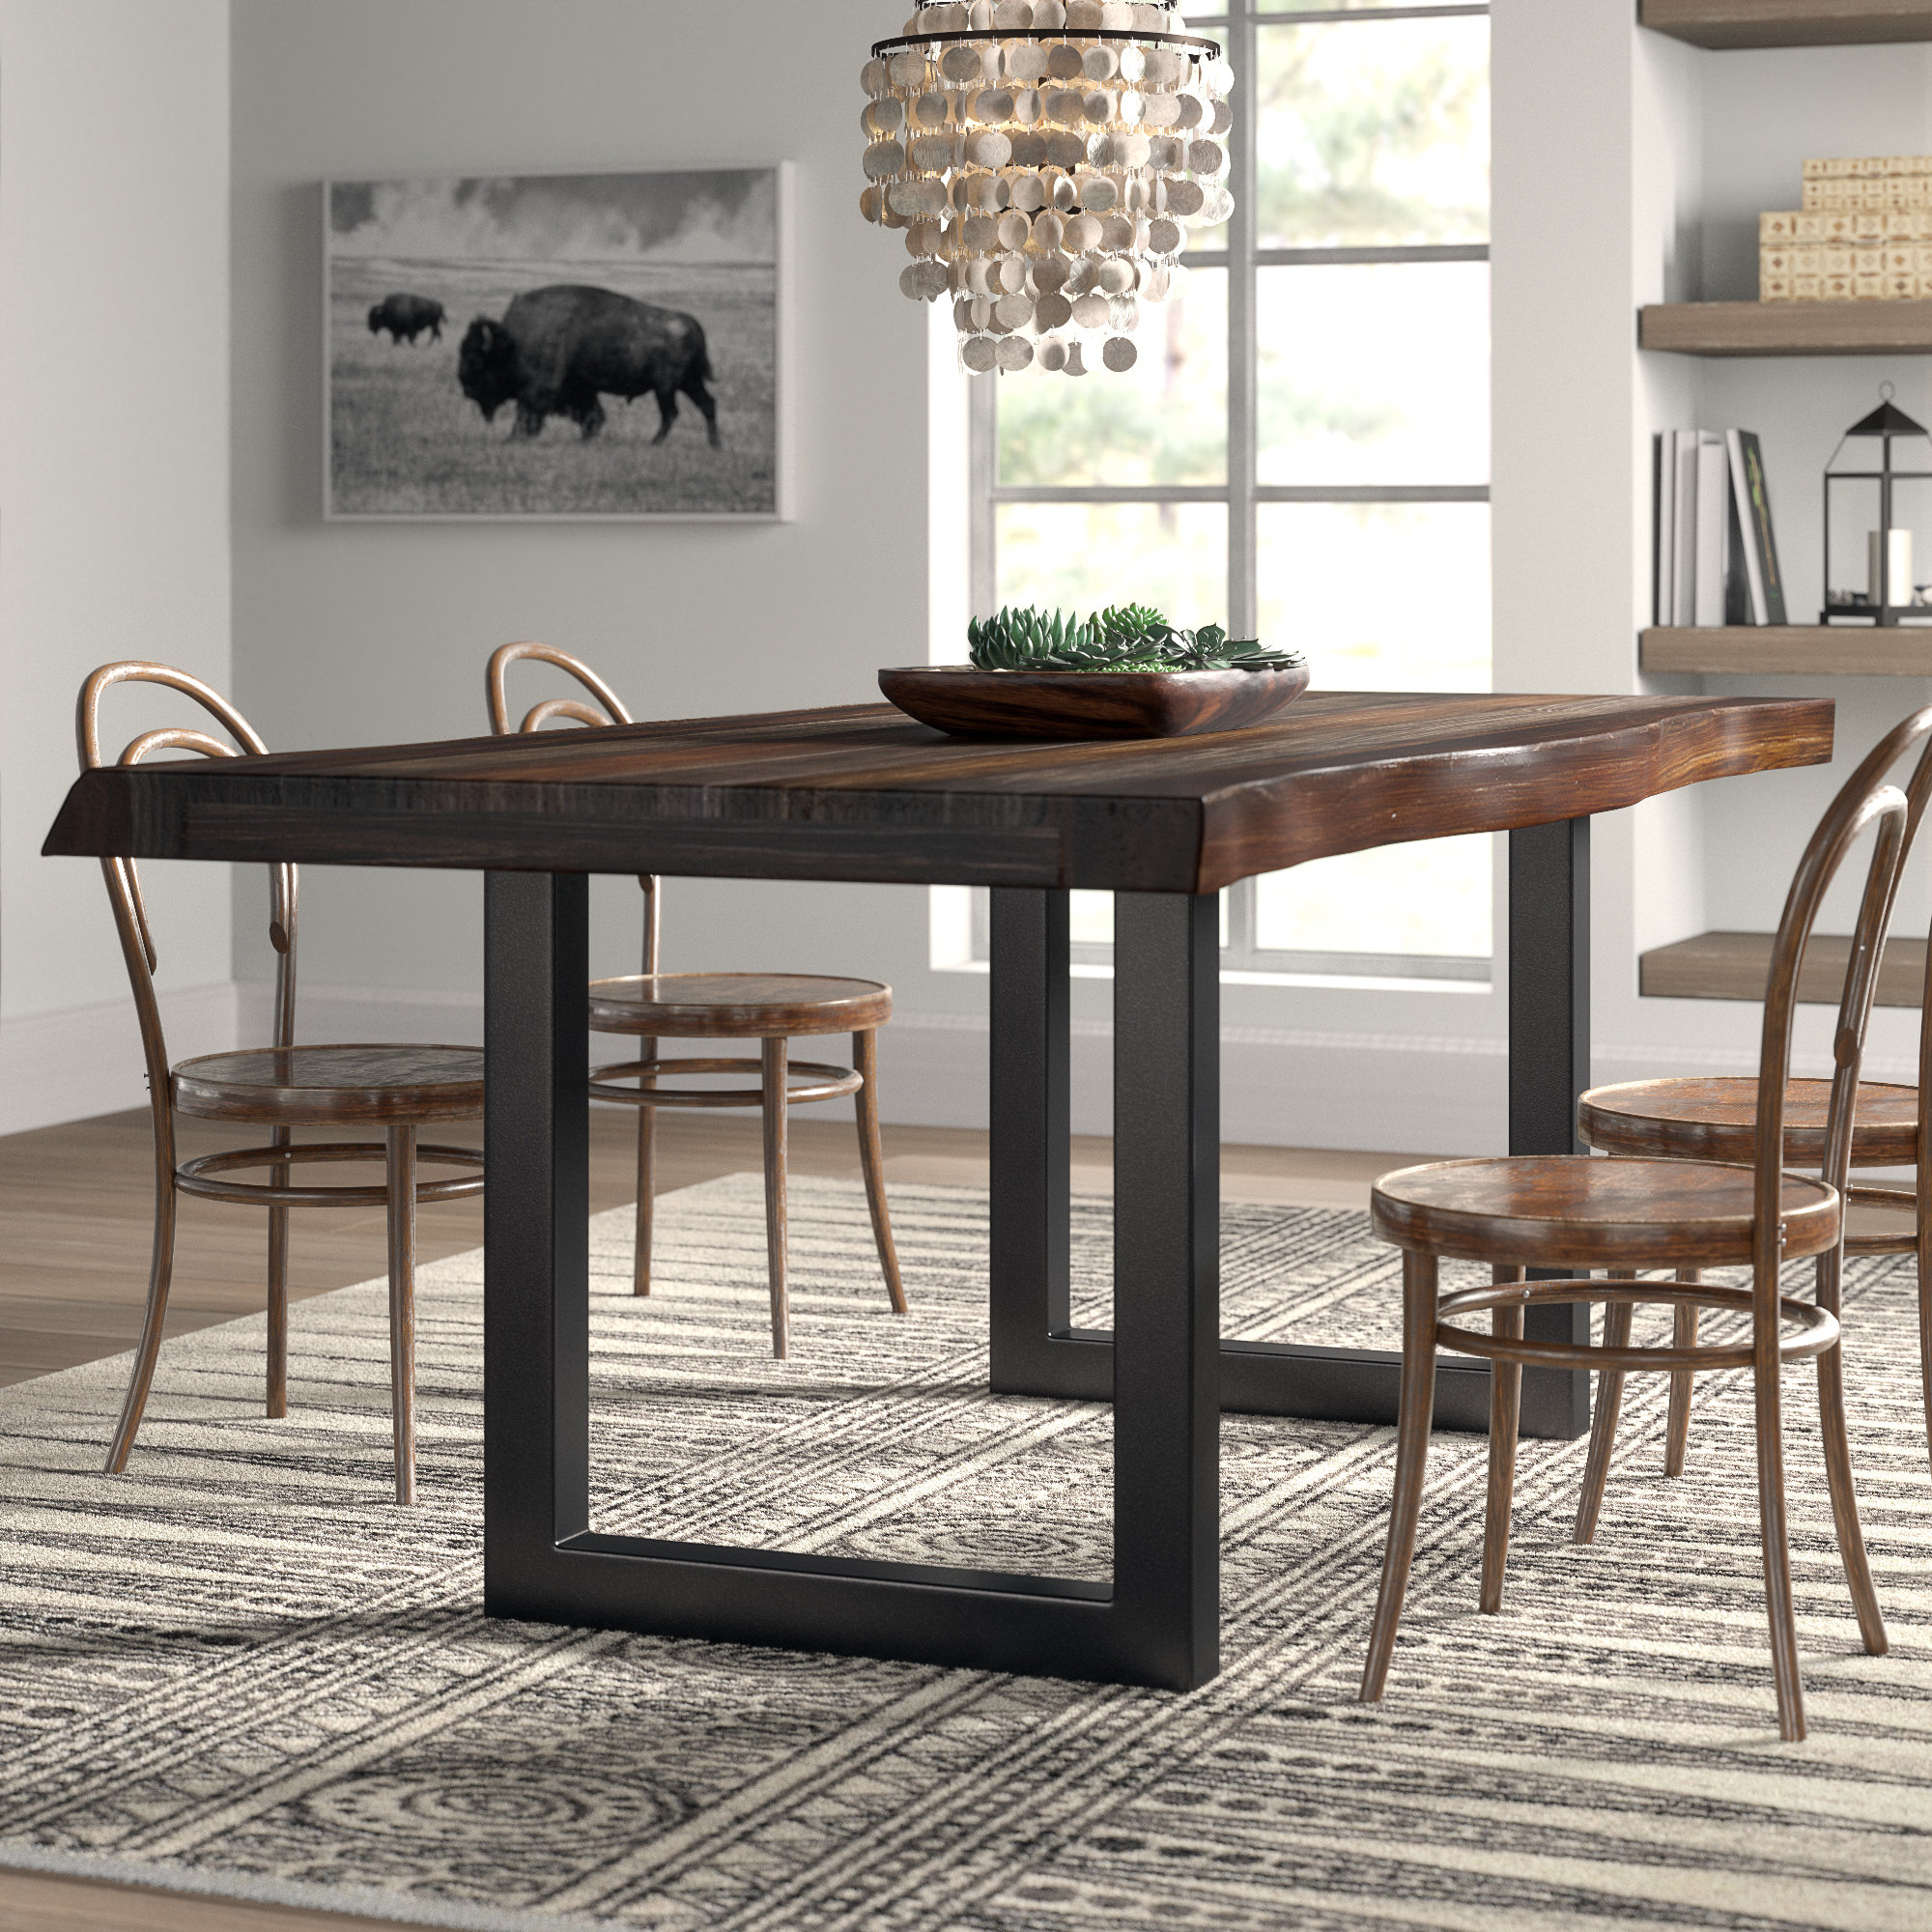 Thomasson Dining Table With Most Popular Anette 3 Piece Counter Height Dining Sets (View 10 of 20)